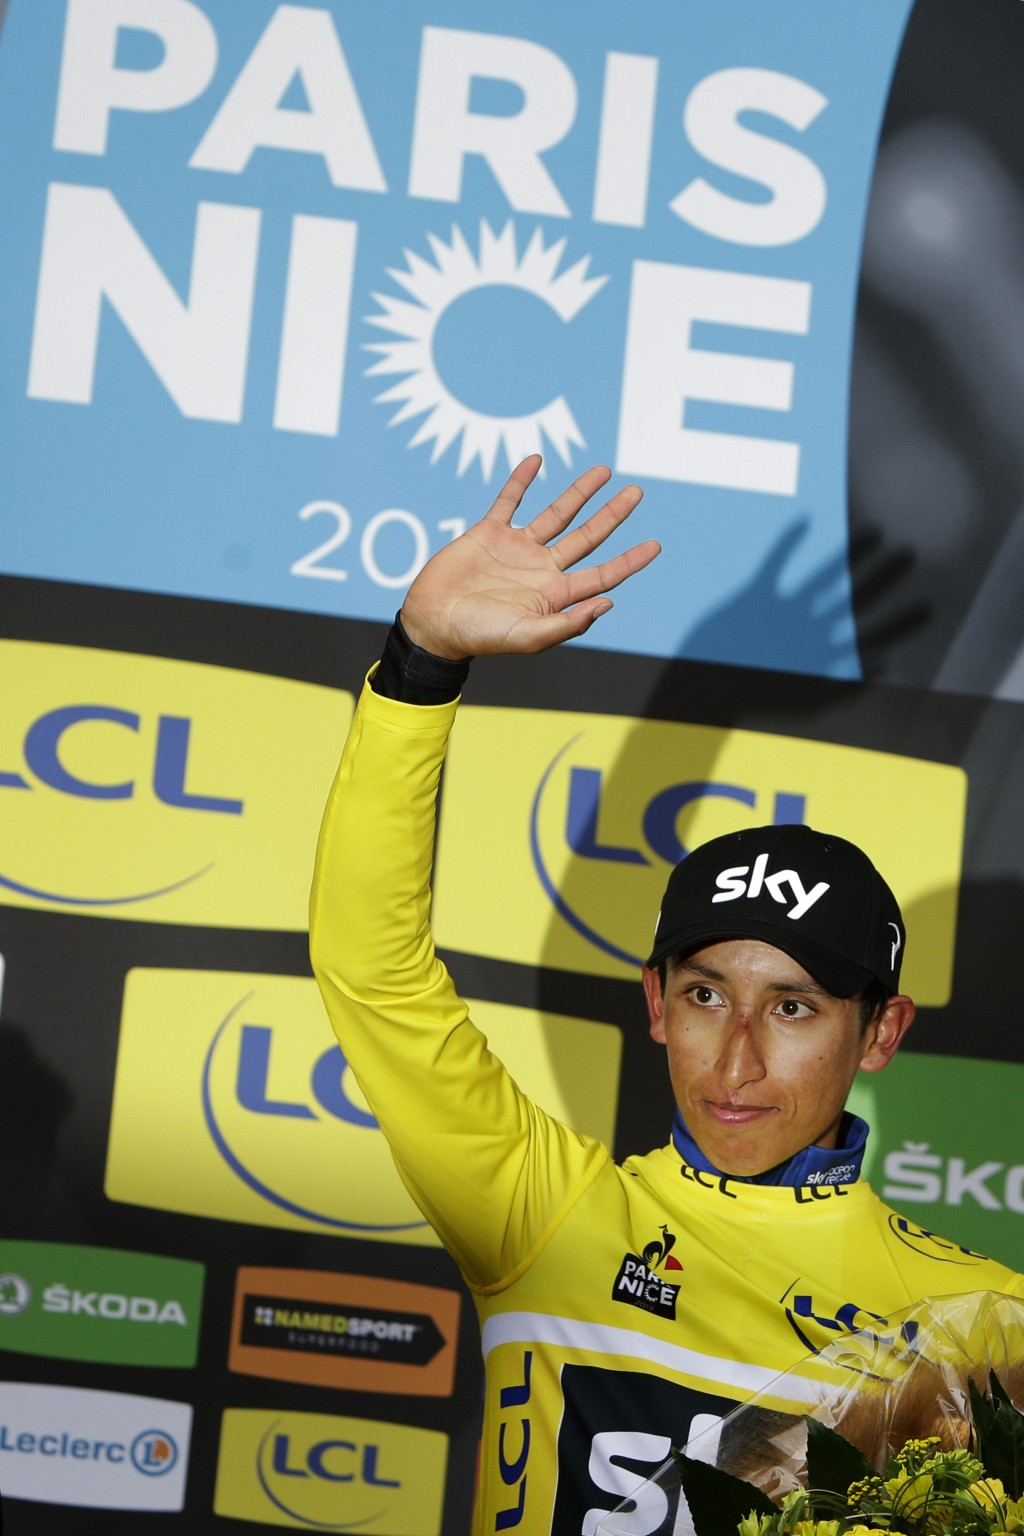 Colombia's Egan Arley Bernal Gomez, wearing the overall leader's yellow jersey, celebrates on the podium after the eighth and final stage of the Paris